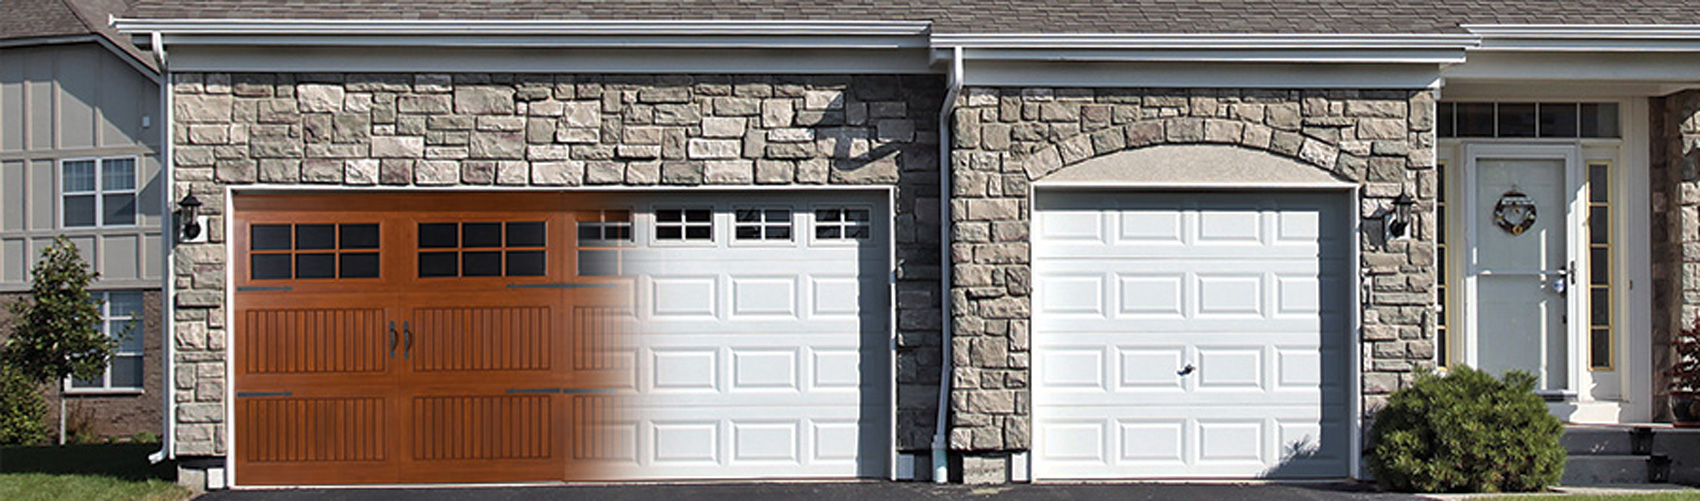 Overhead Garage Doors Vs Other Options